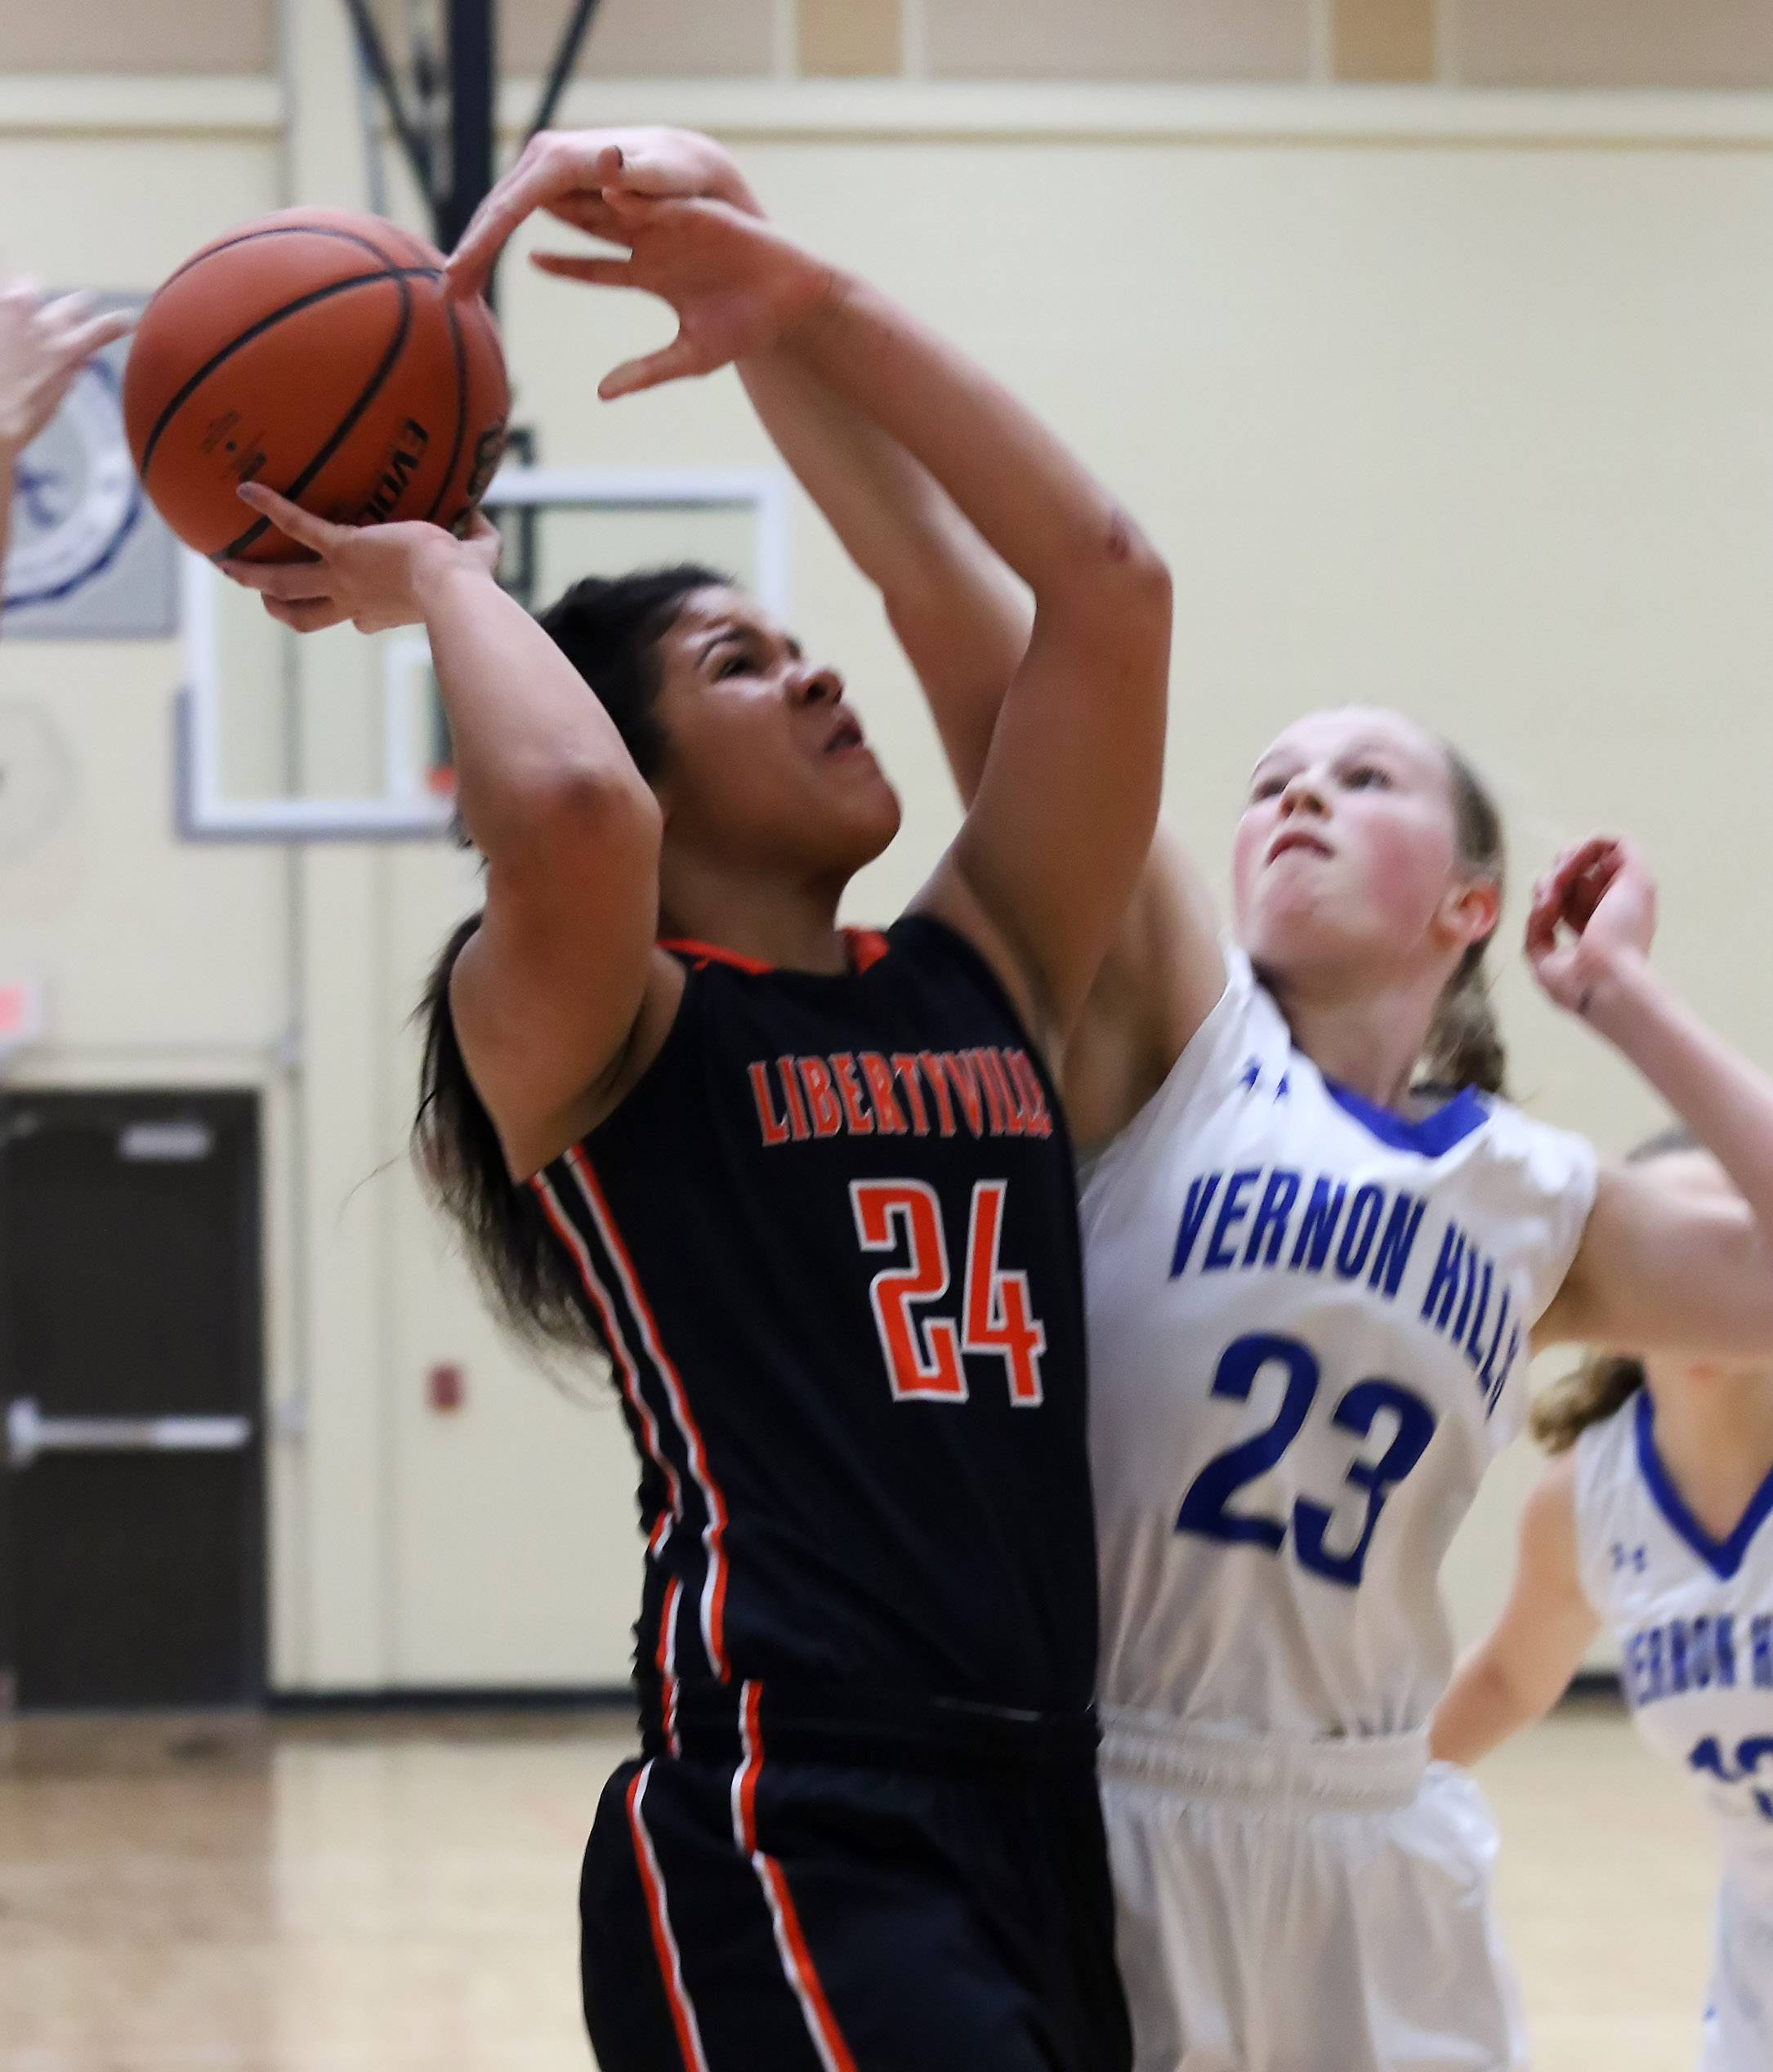 Libertyville guard Zi Tompkins has her shot blocked by Vernon Hills forward Becky Bahlmann during tournament play Thursday at Libertyville.